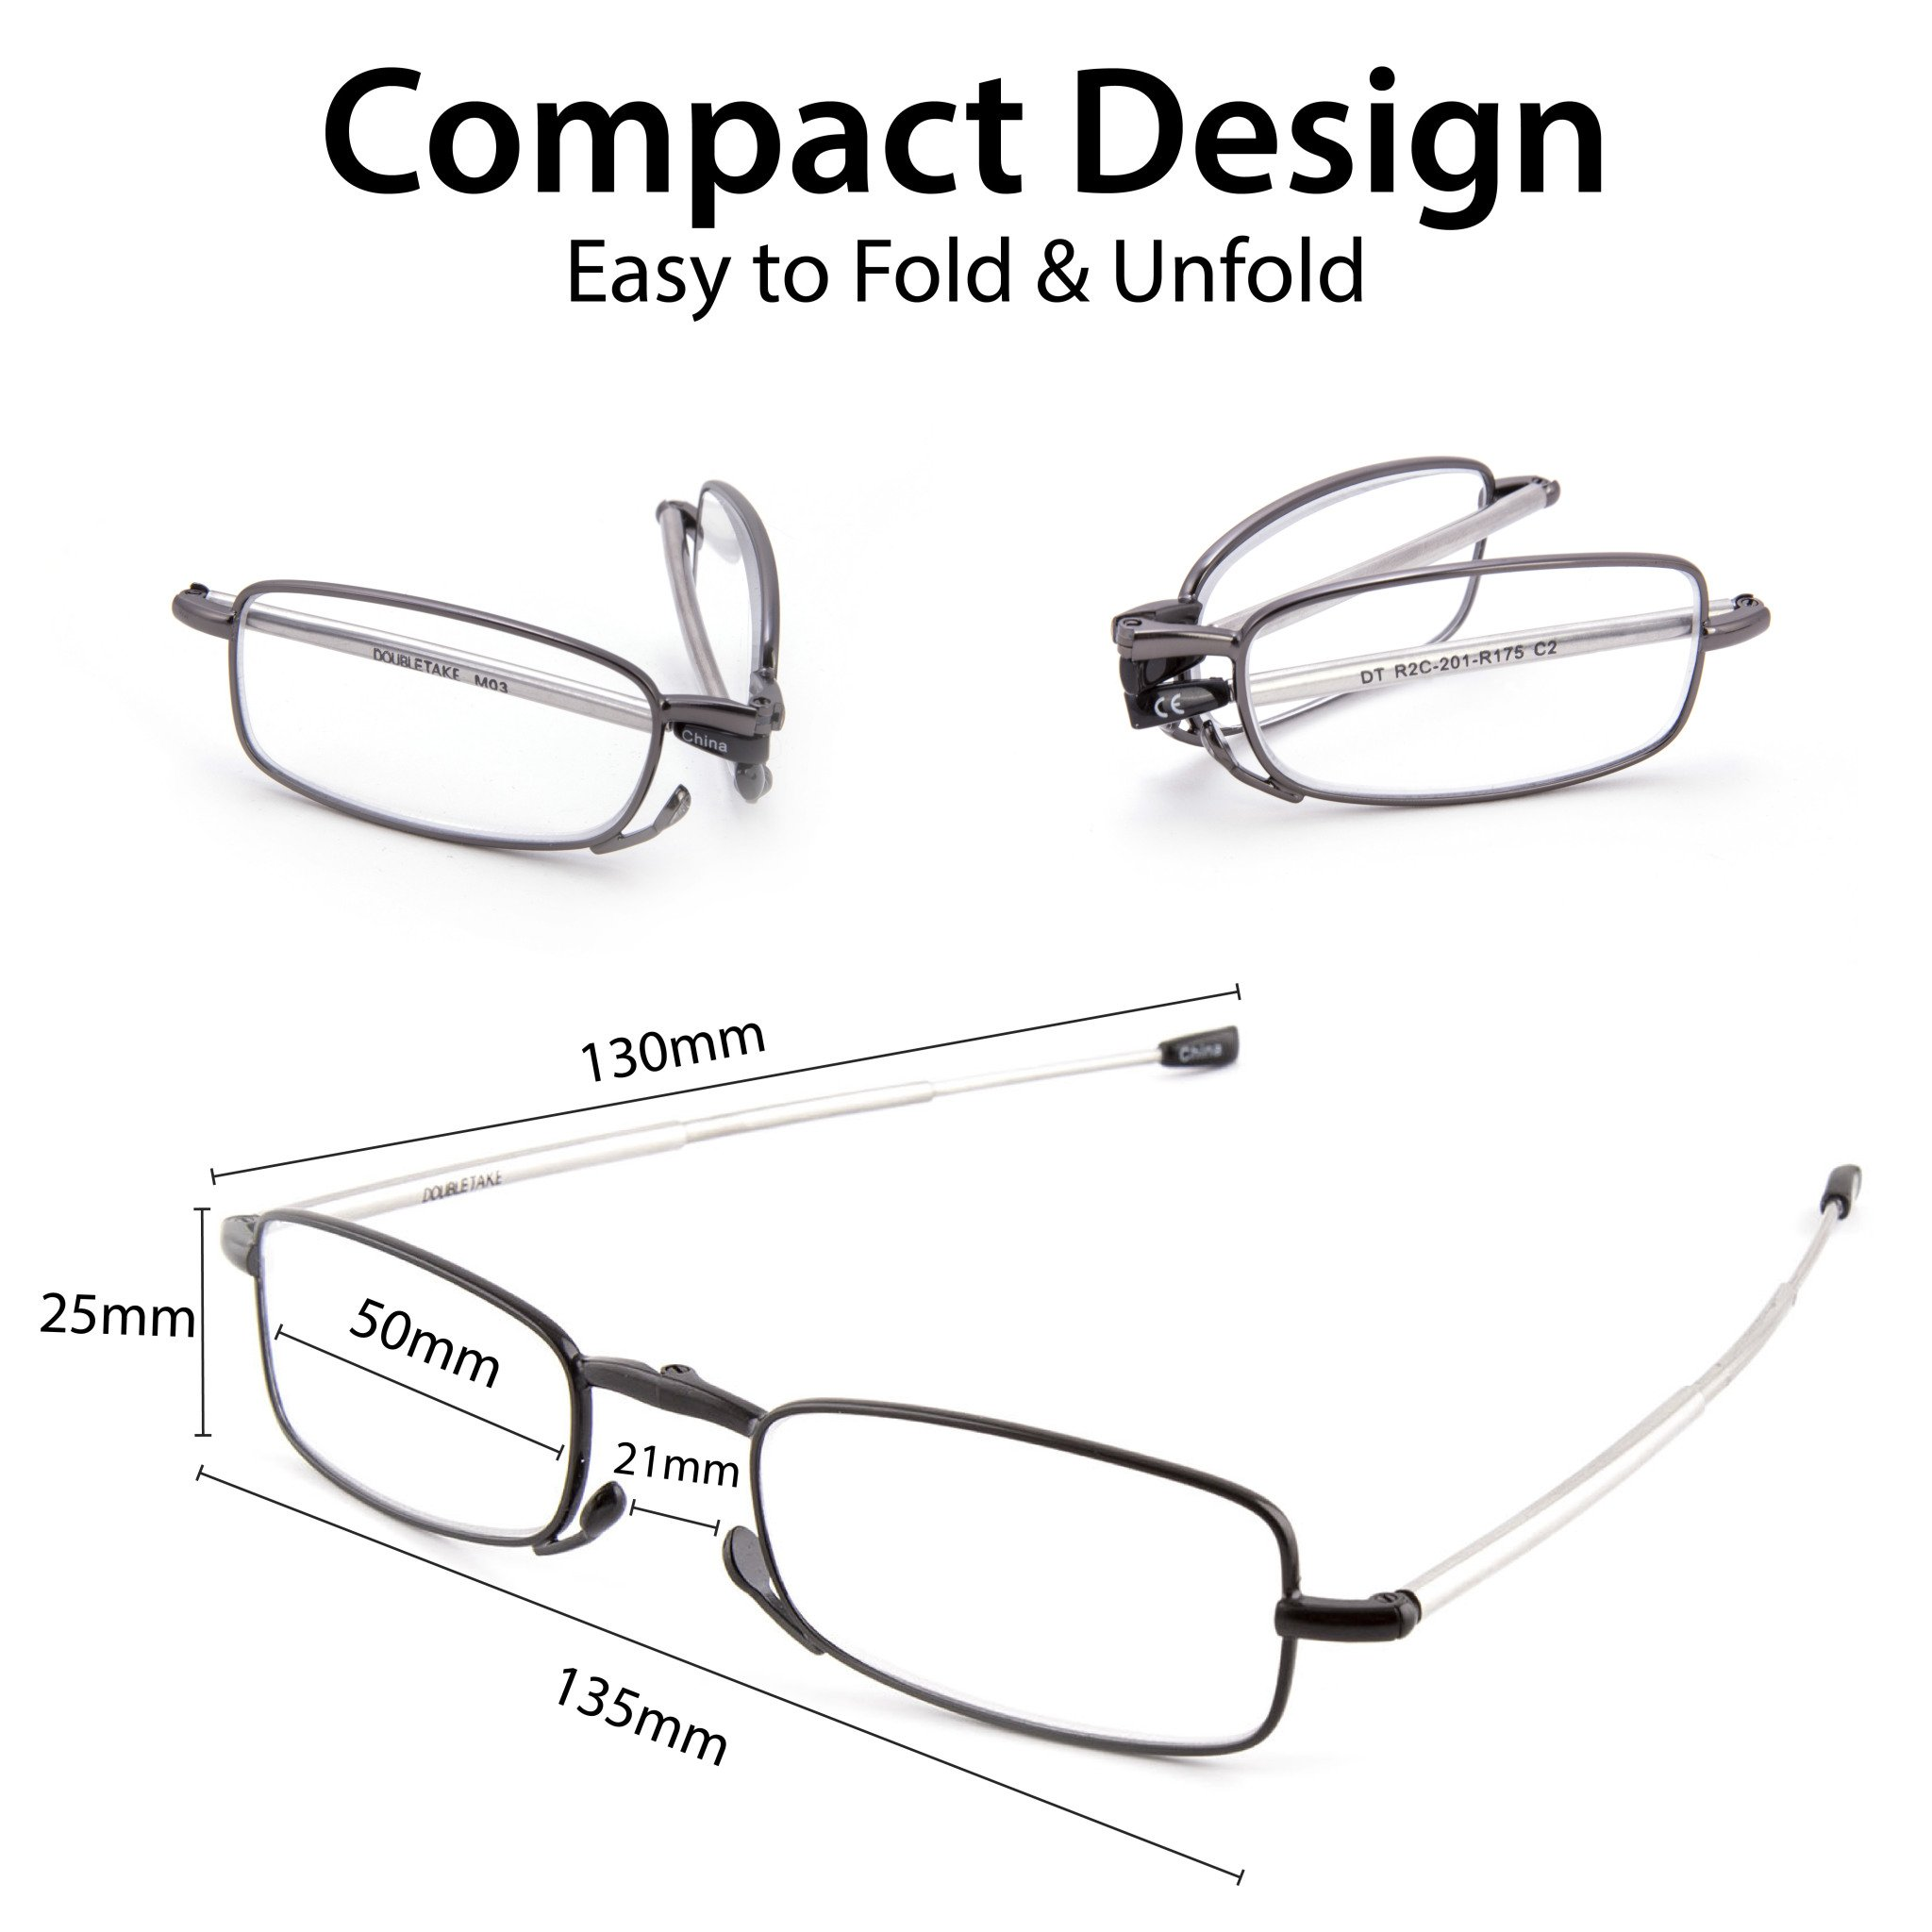 DOUBLETAKE 2 Pack Compact Folding Readers Reading Glasses w Case - 1.50x by DOUBLETAKE (Image #1)